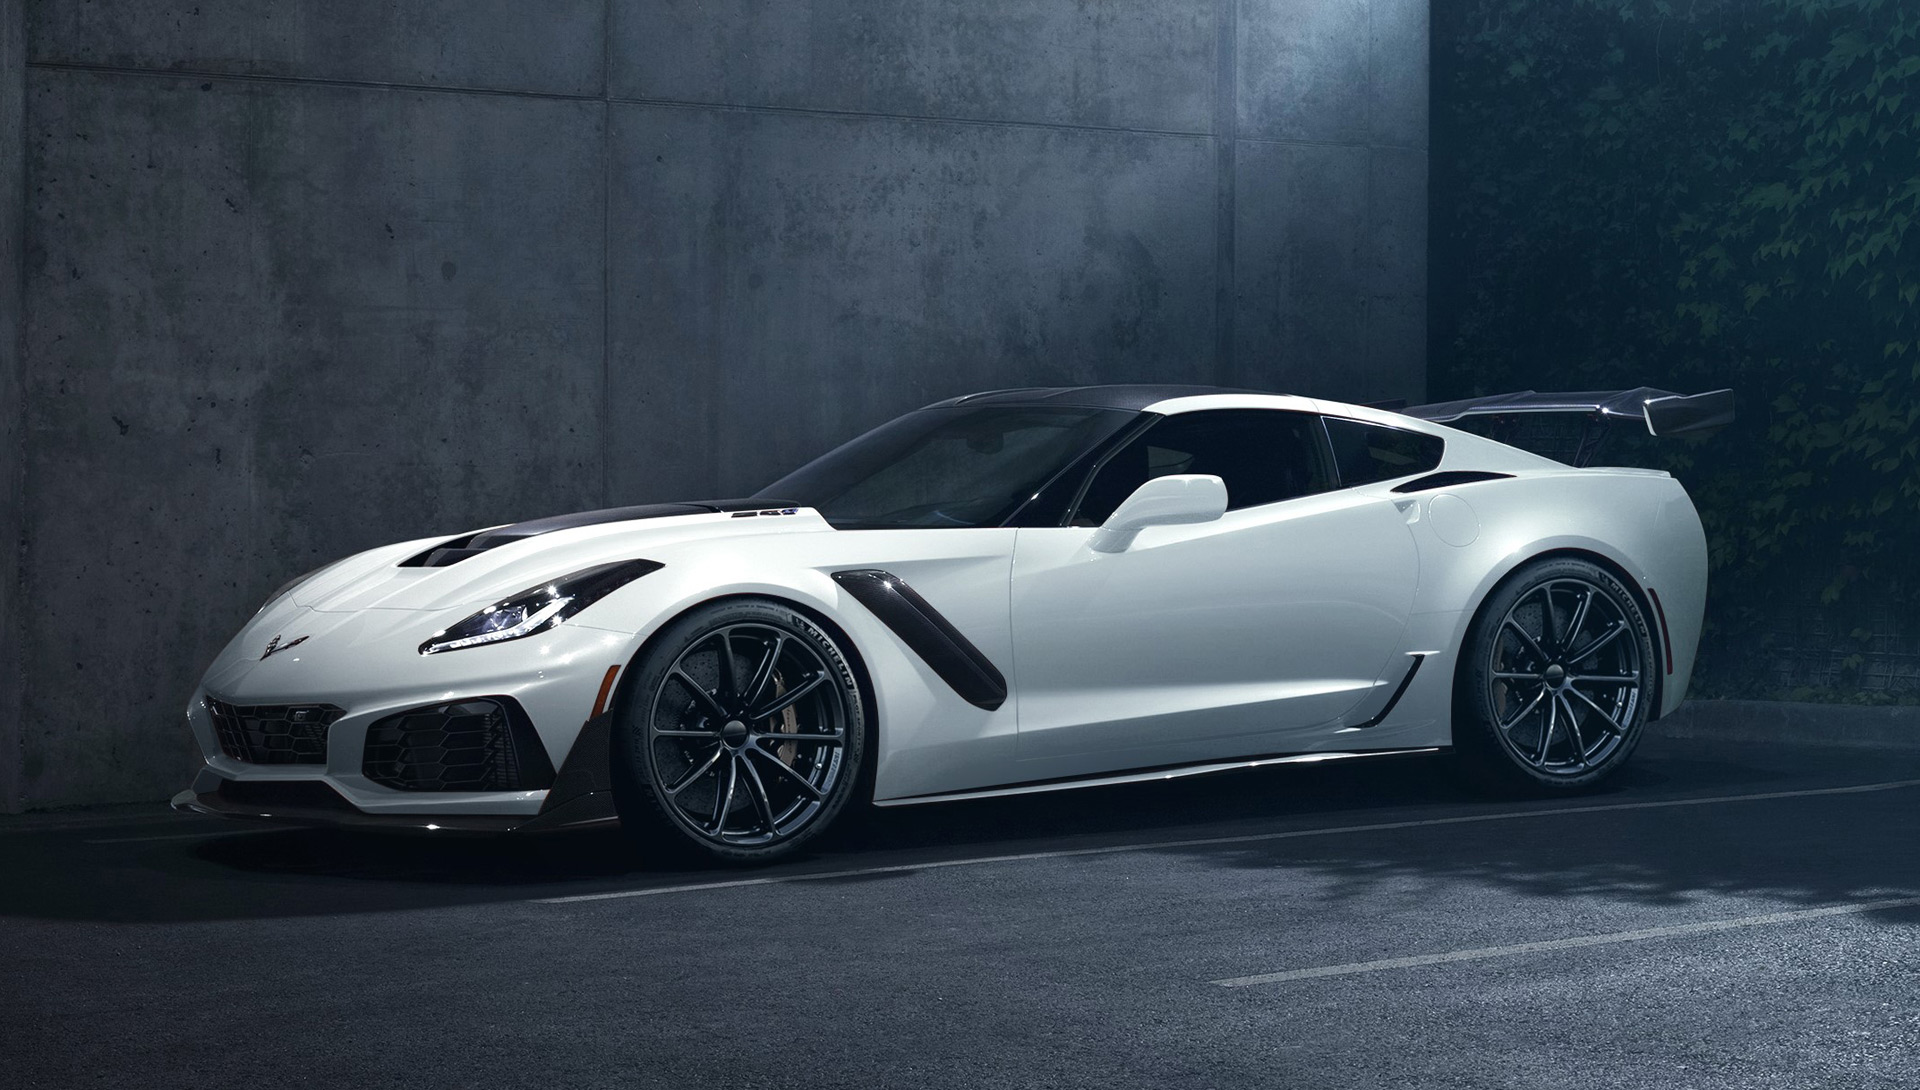 Hennessey Offering Up To 1 200 Horsepower For Corvette Zr1